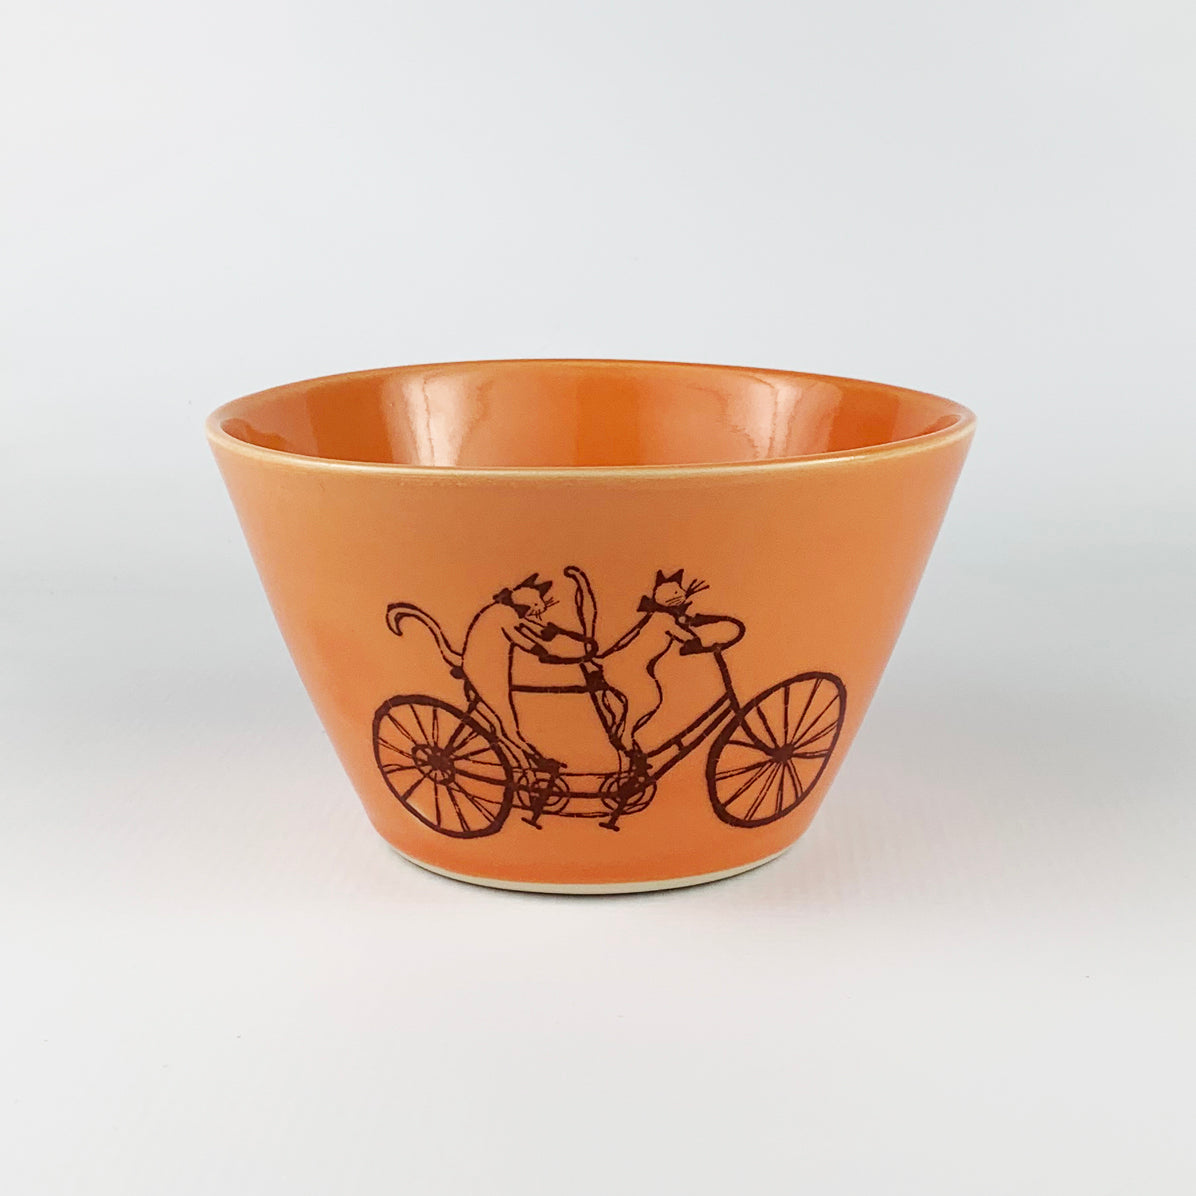 Small Bowl - Illustrated Cat Riding a Bike Design